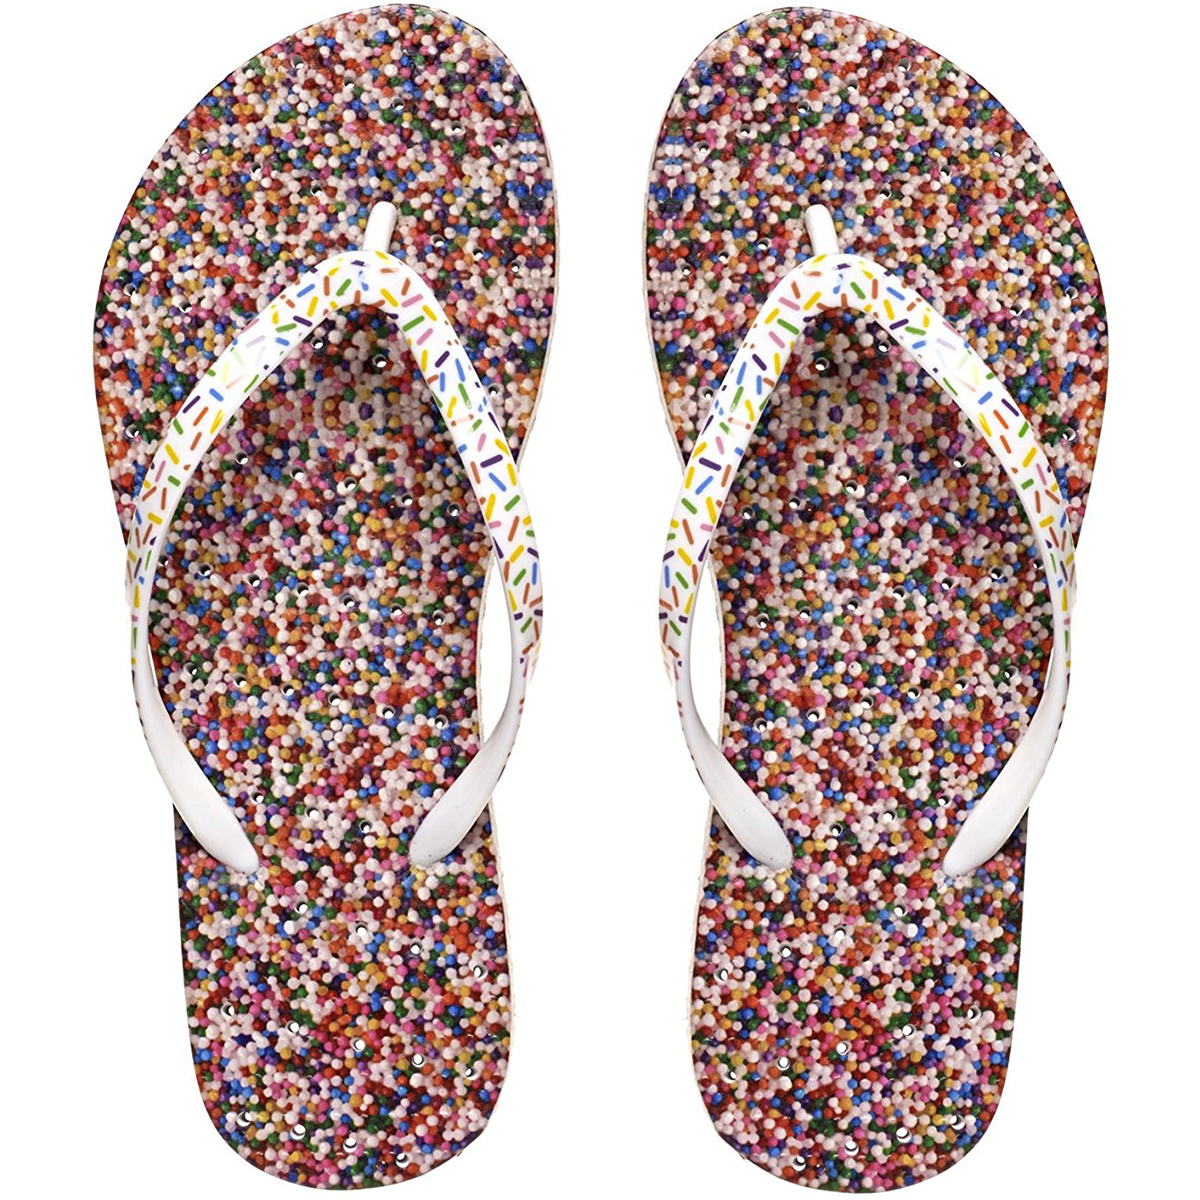 b55e41a0e Details about Showaflops Women s Antimicrobial Shower and Water Sandals -  Sprinkles